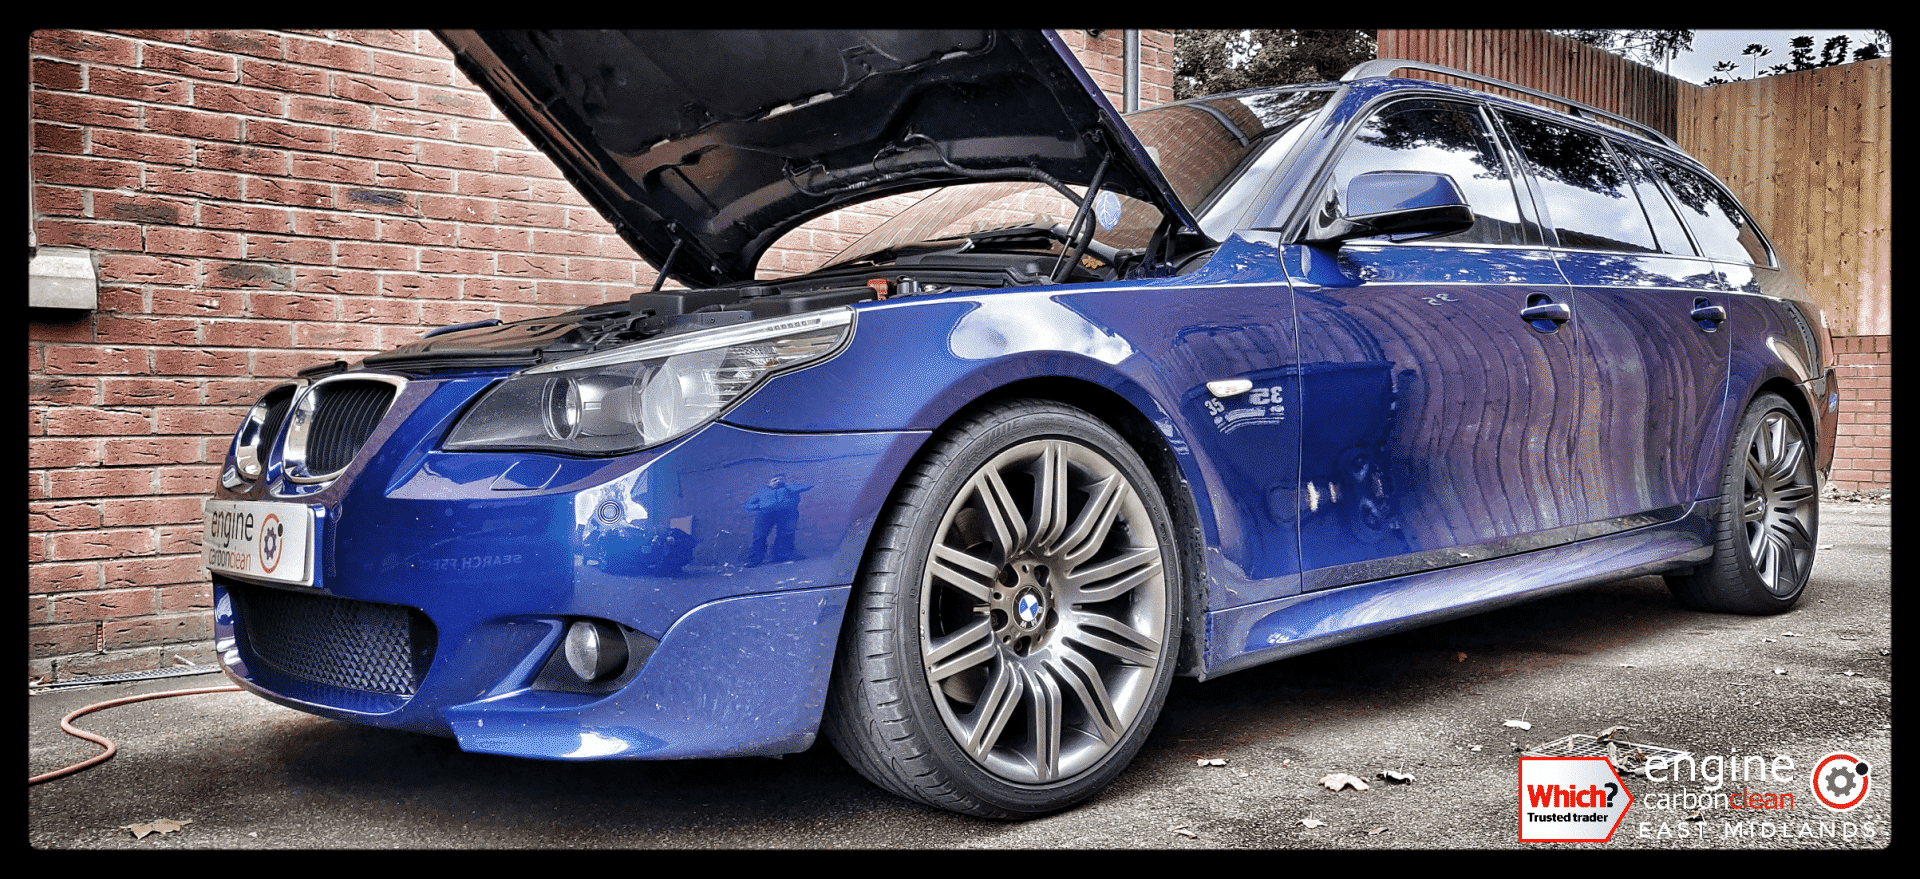 Diagnostic Consultation and Engine Carbon Clean on a BMW 520d (2010 - 122,805 miles)